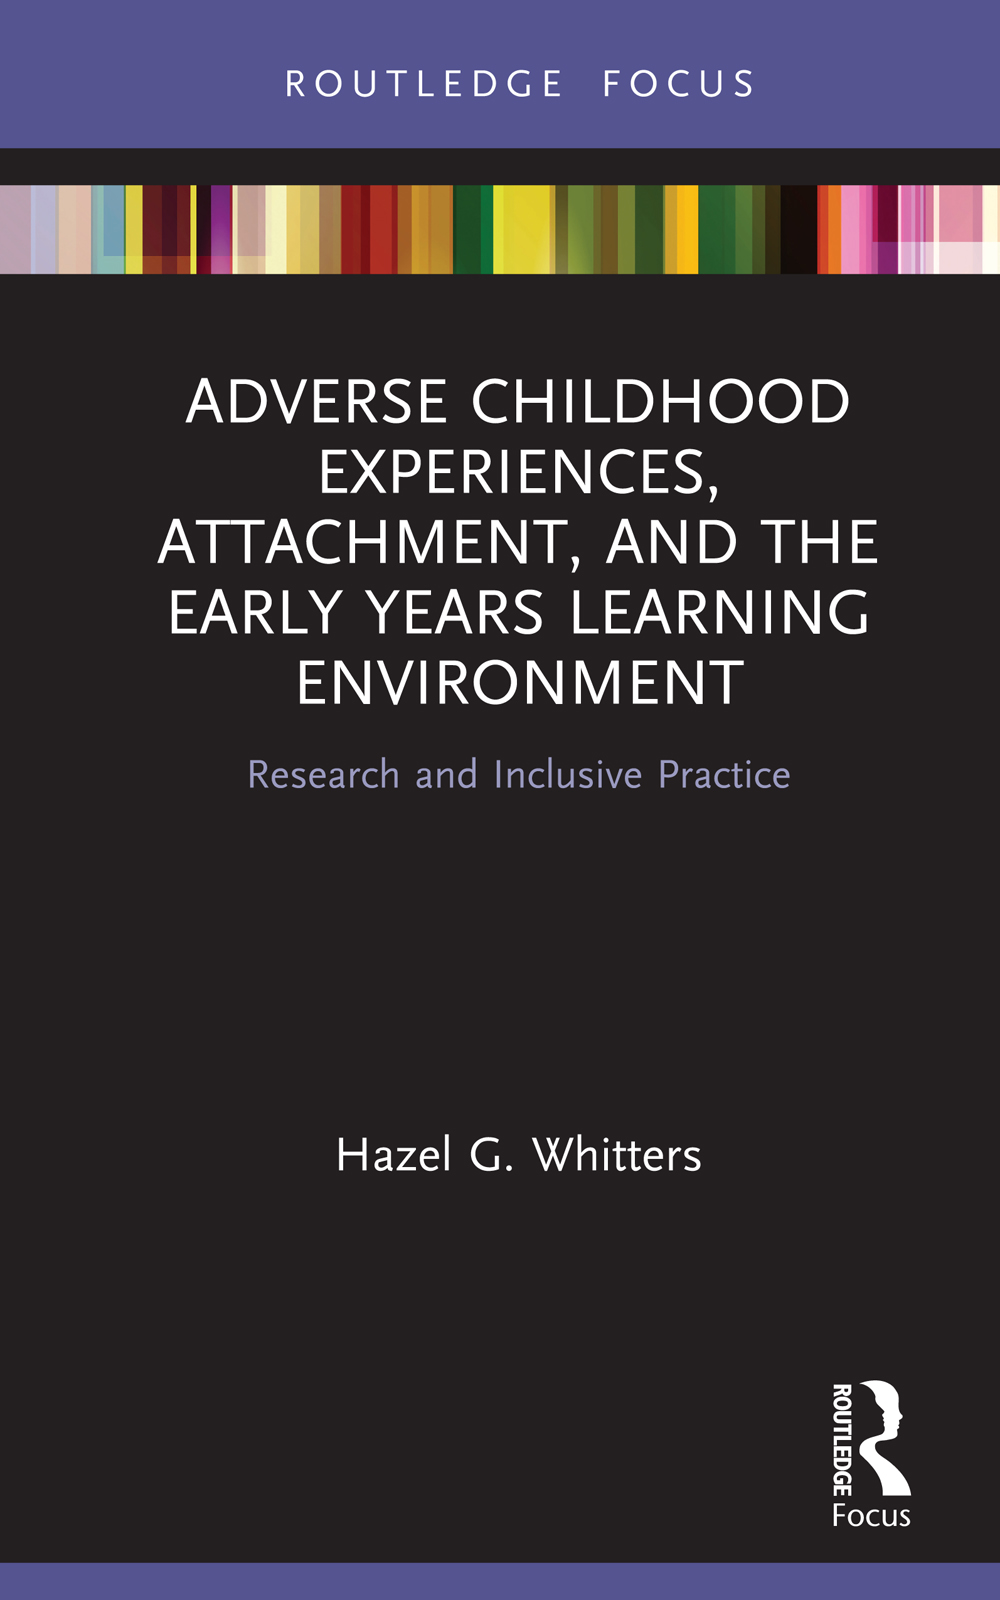 Adverse Childhood Experiences, Attachment, and the Early Years Learning Environment: Research and Inclusive Practice book cover